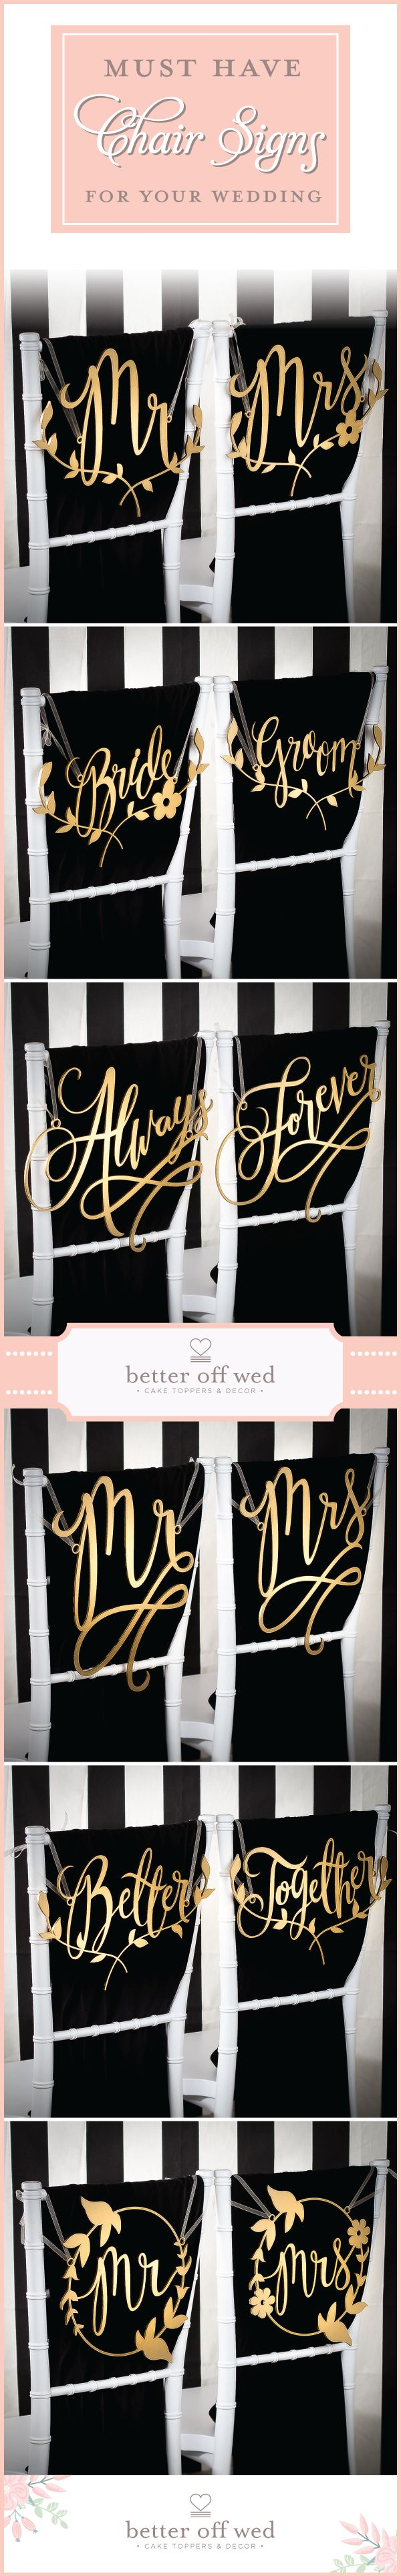 Must have wedding chair signs for your big day! <3 This site has so many elegant gold and silver designs to choose from!